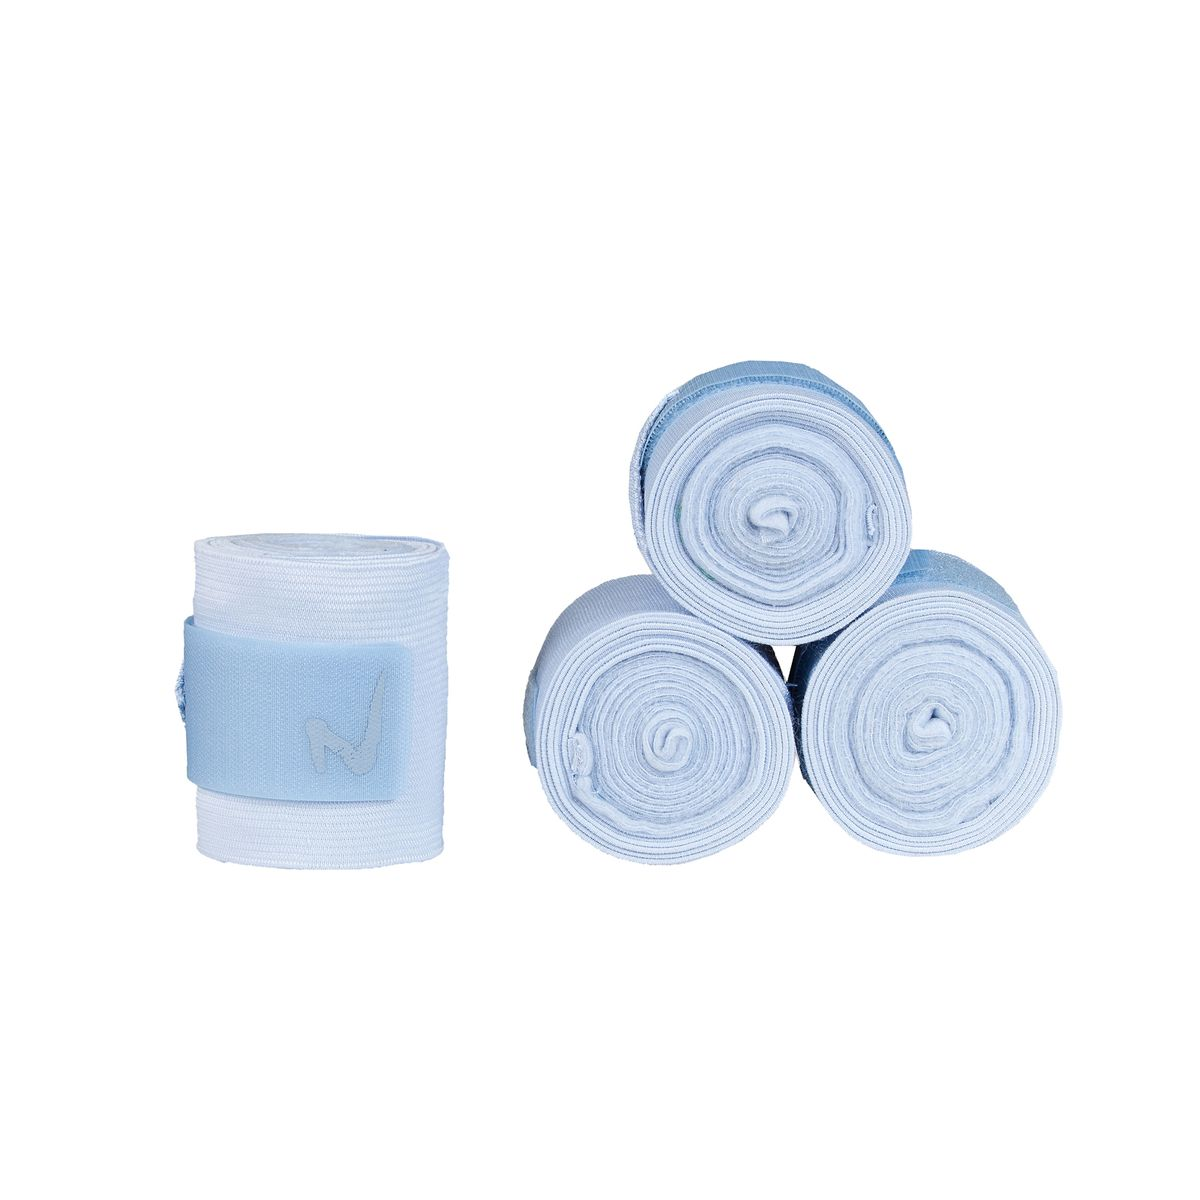 HorZe Nest Combi Fleece Elastic Bandages